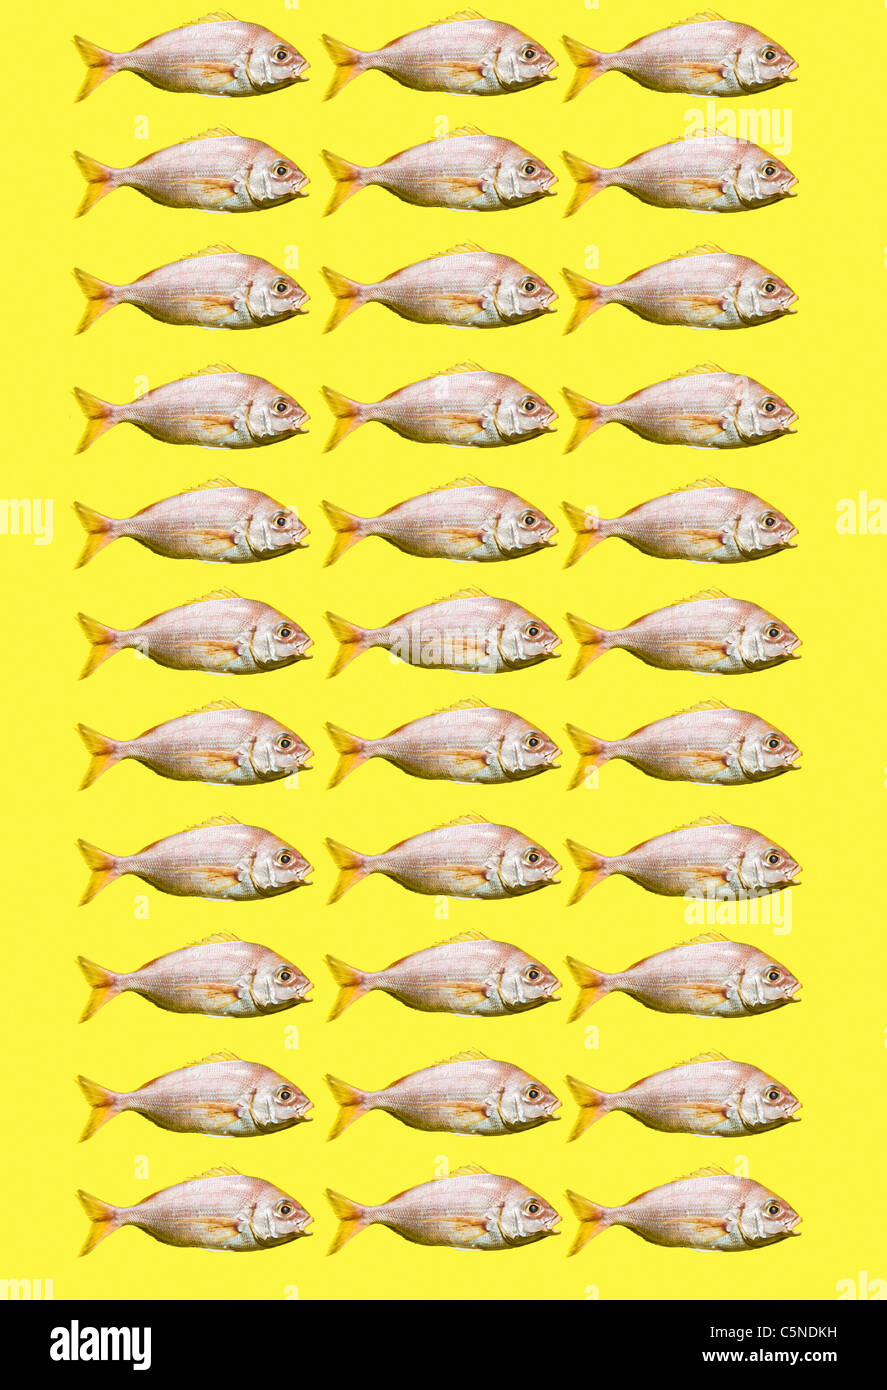 Fish on a yellow background - Stock Image